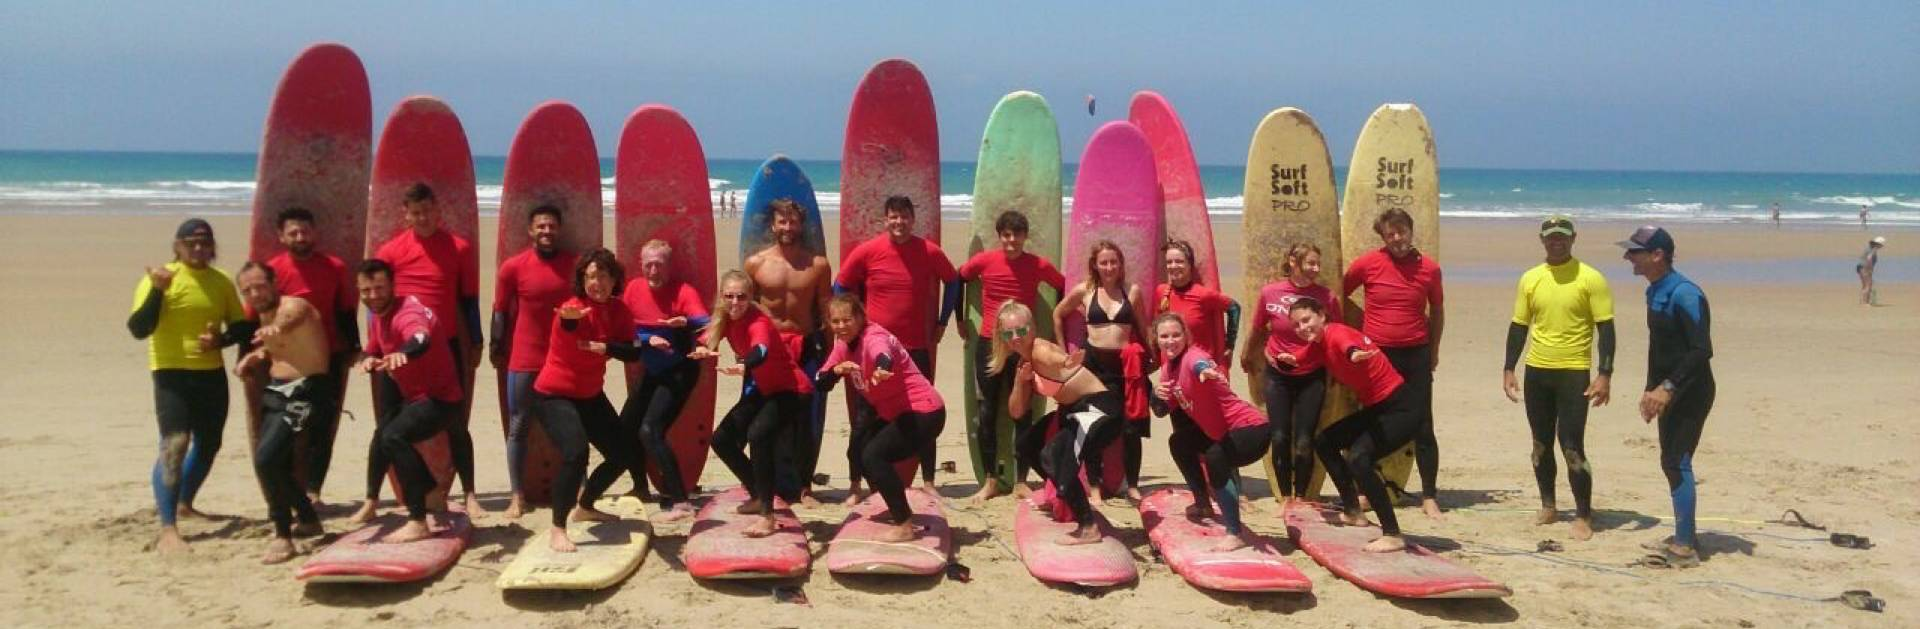 Surfing lessons at the Surf Camp Spain, Andalusia, Cadiz